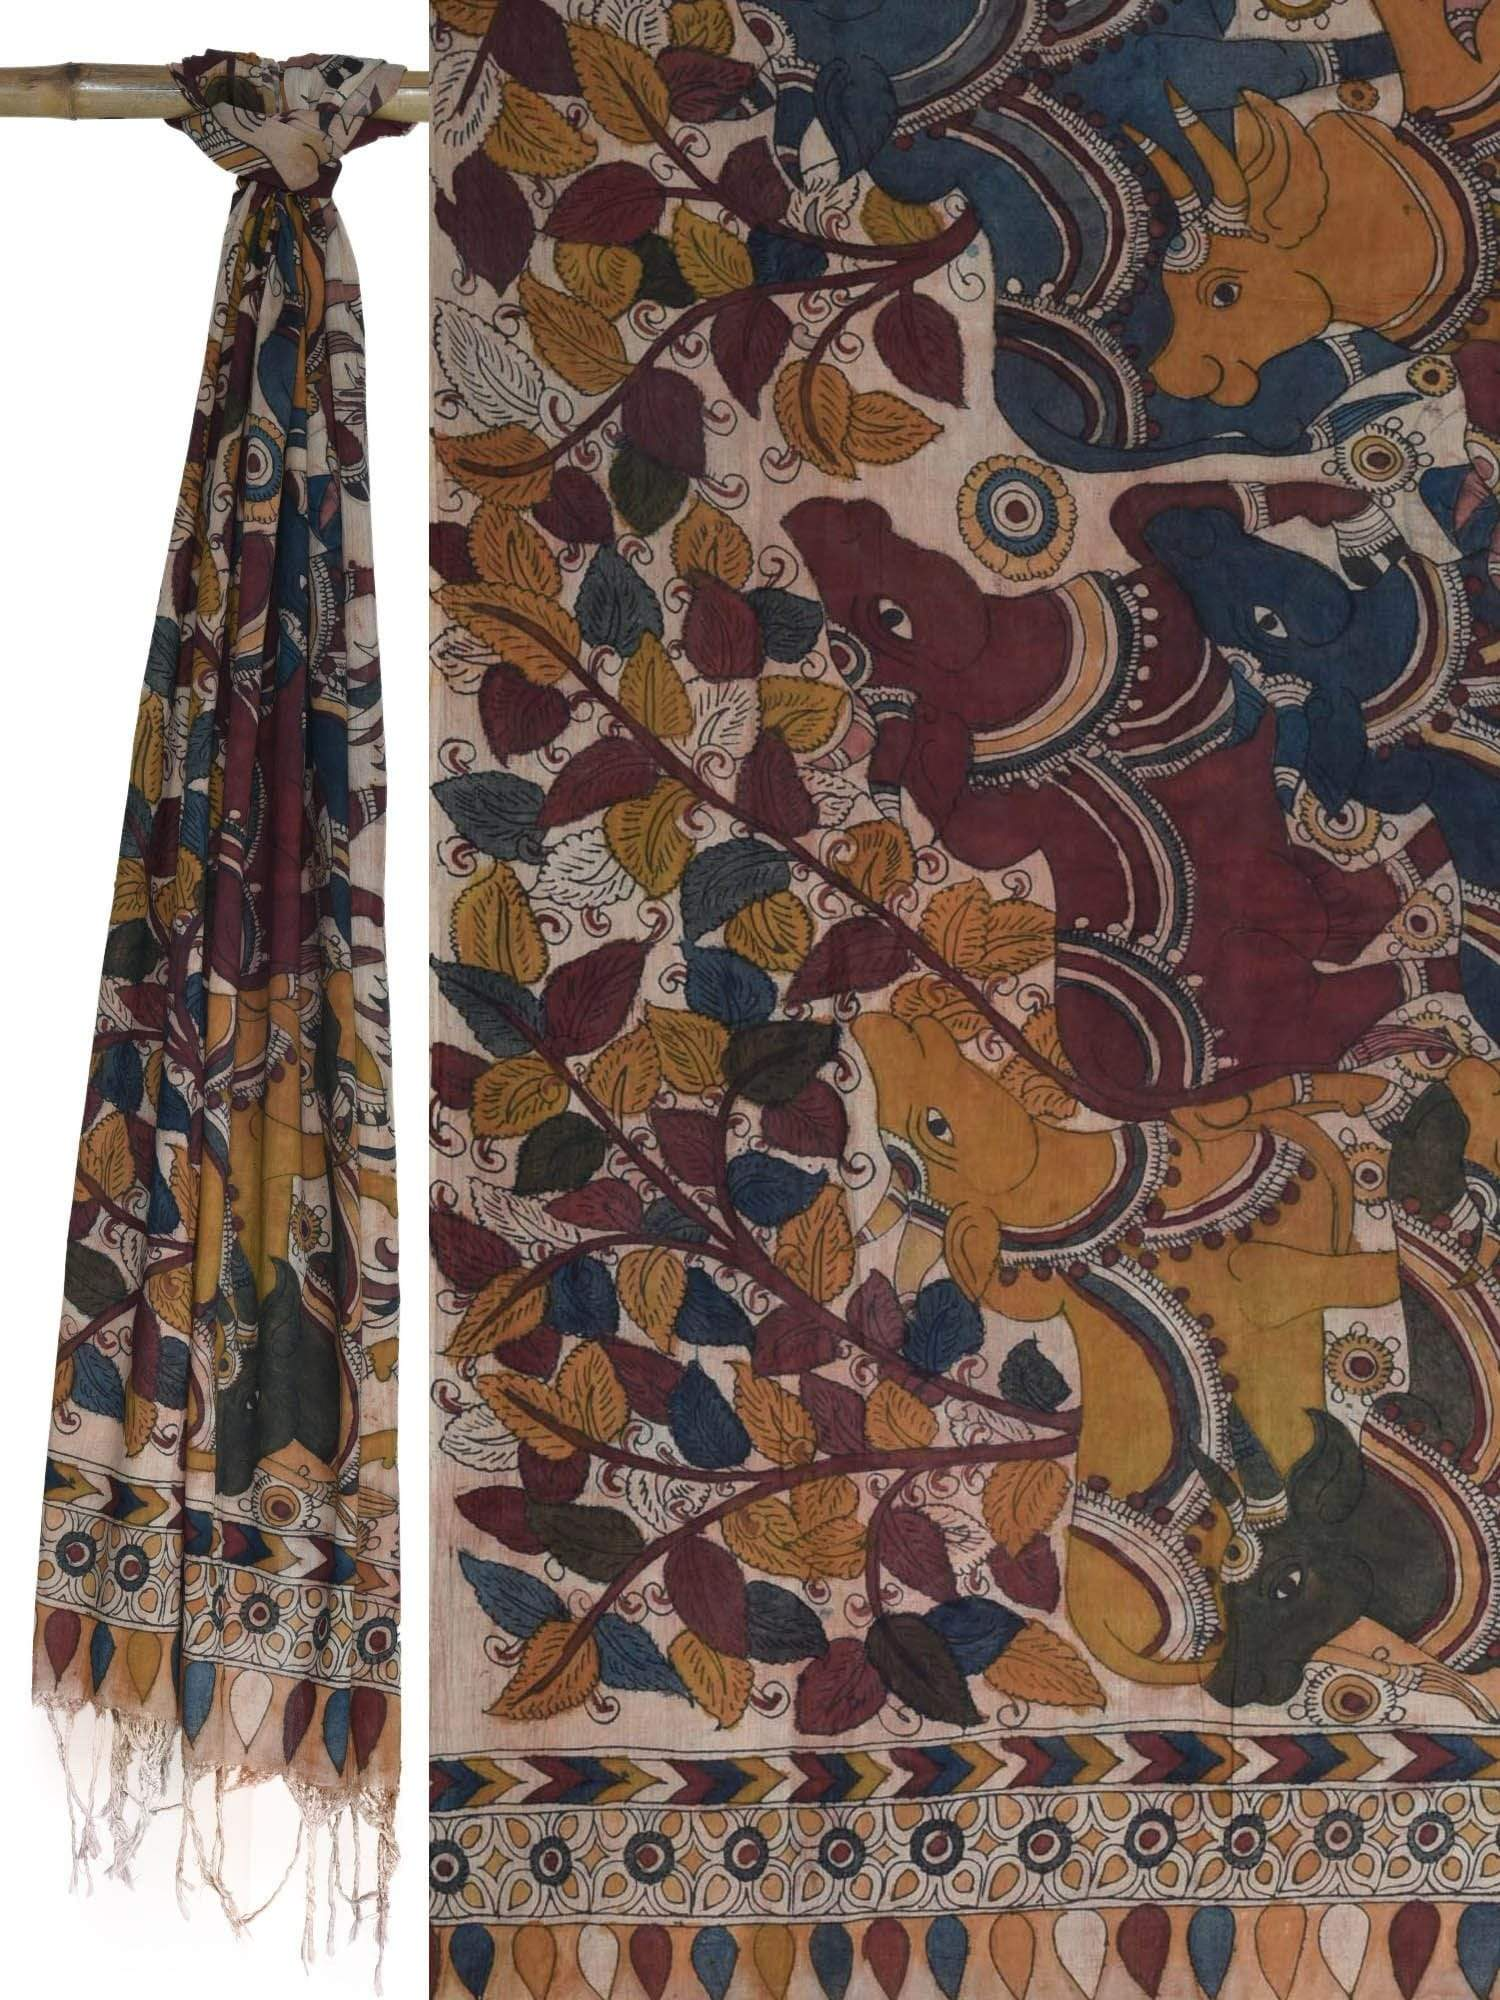 Cream Kalamkari Hand Painted Cotton Dupatta with Cows Design ds1636